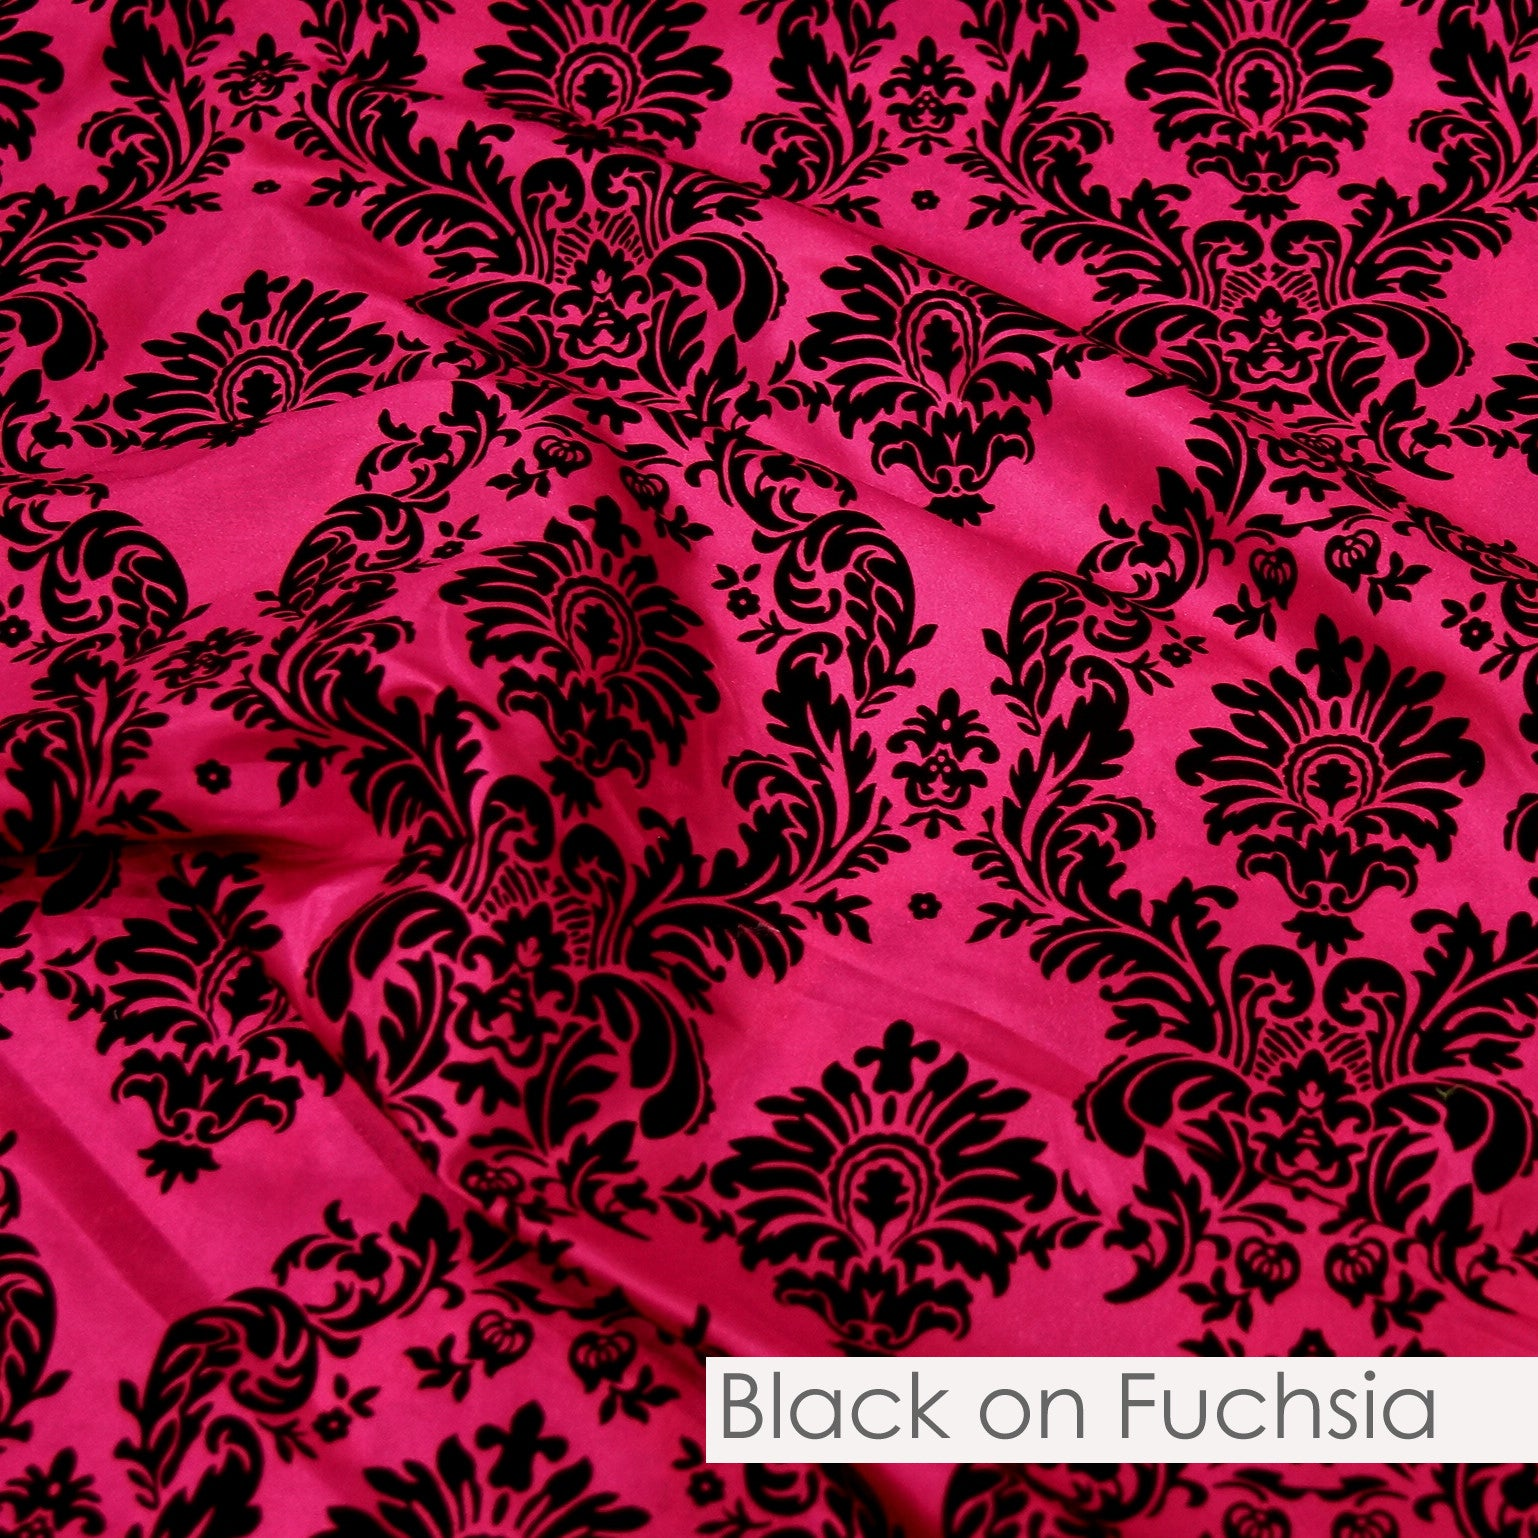 BLACK ON FUCHSIA